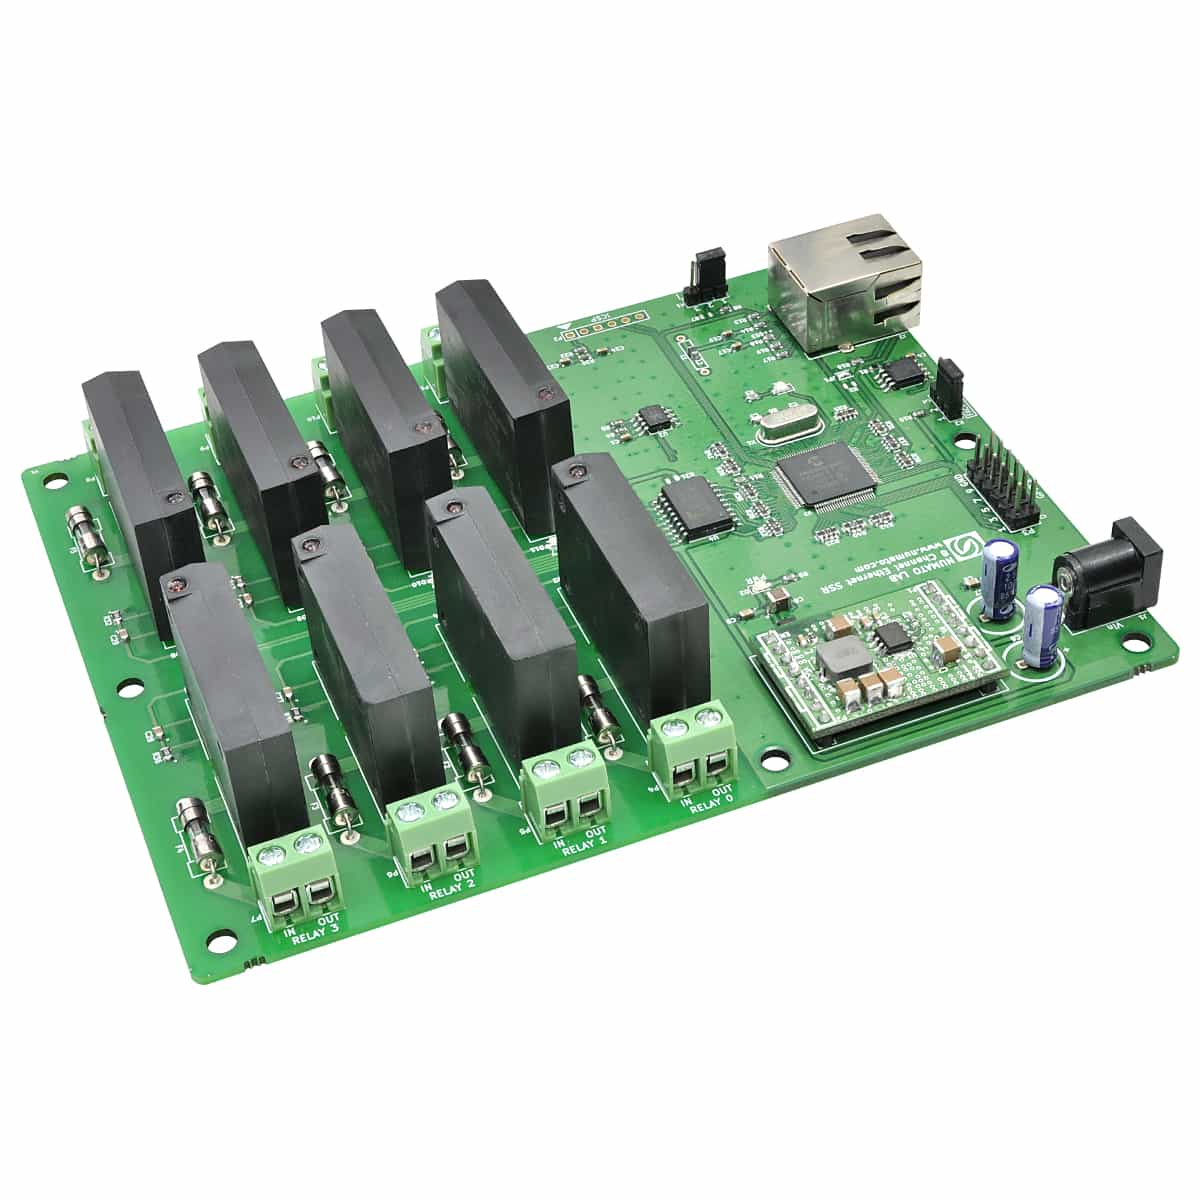 Channelether ssr on solid state relay board